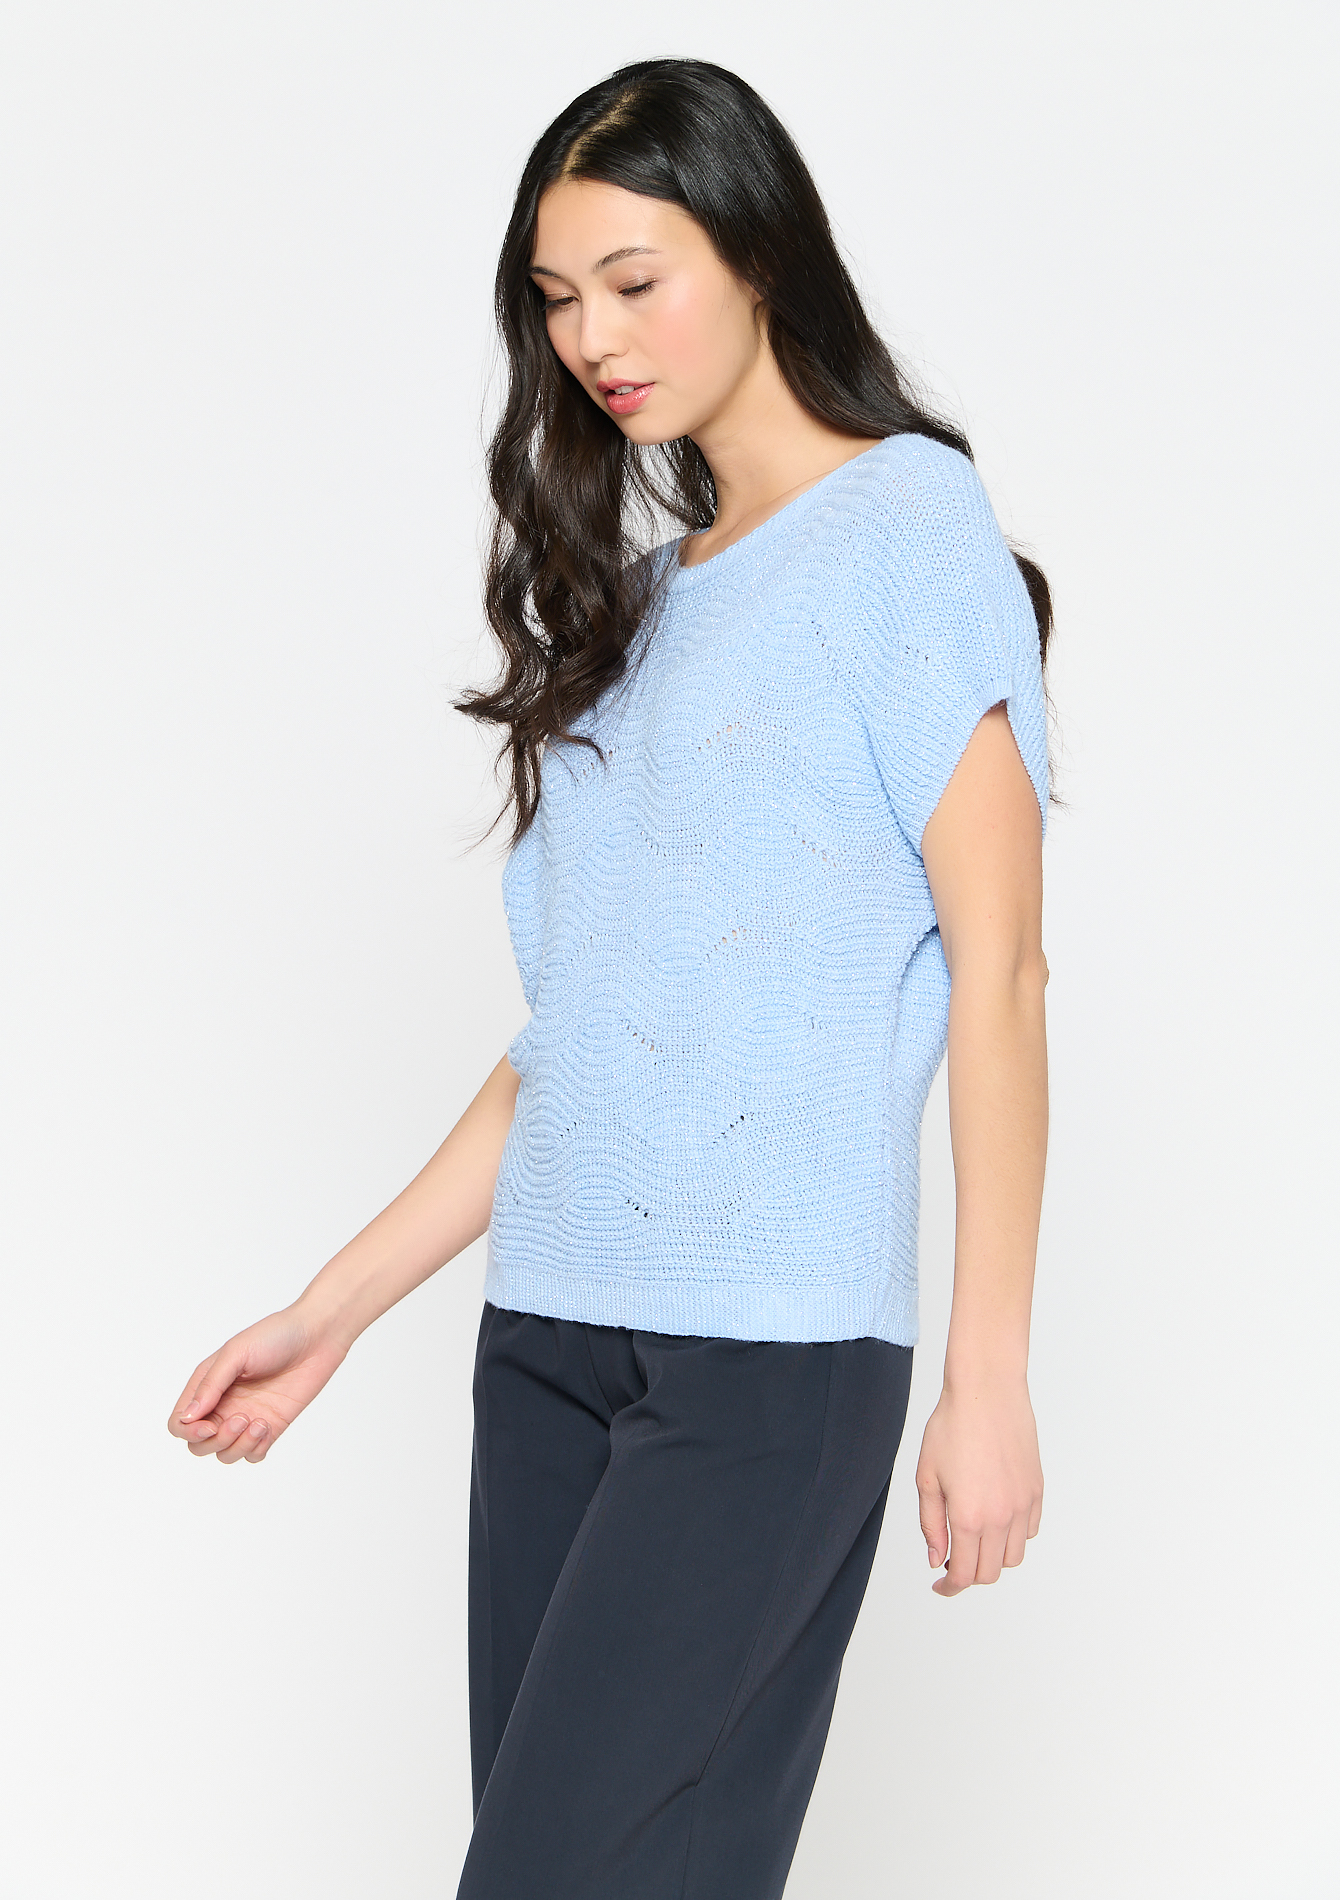 Gebreide tanktop met lurex - LIGHT BLUE - 04005605_1709